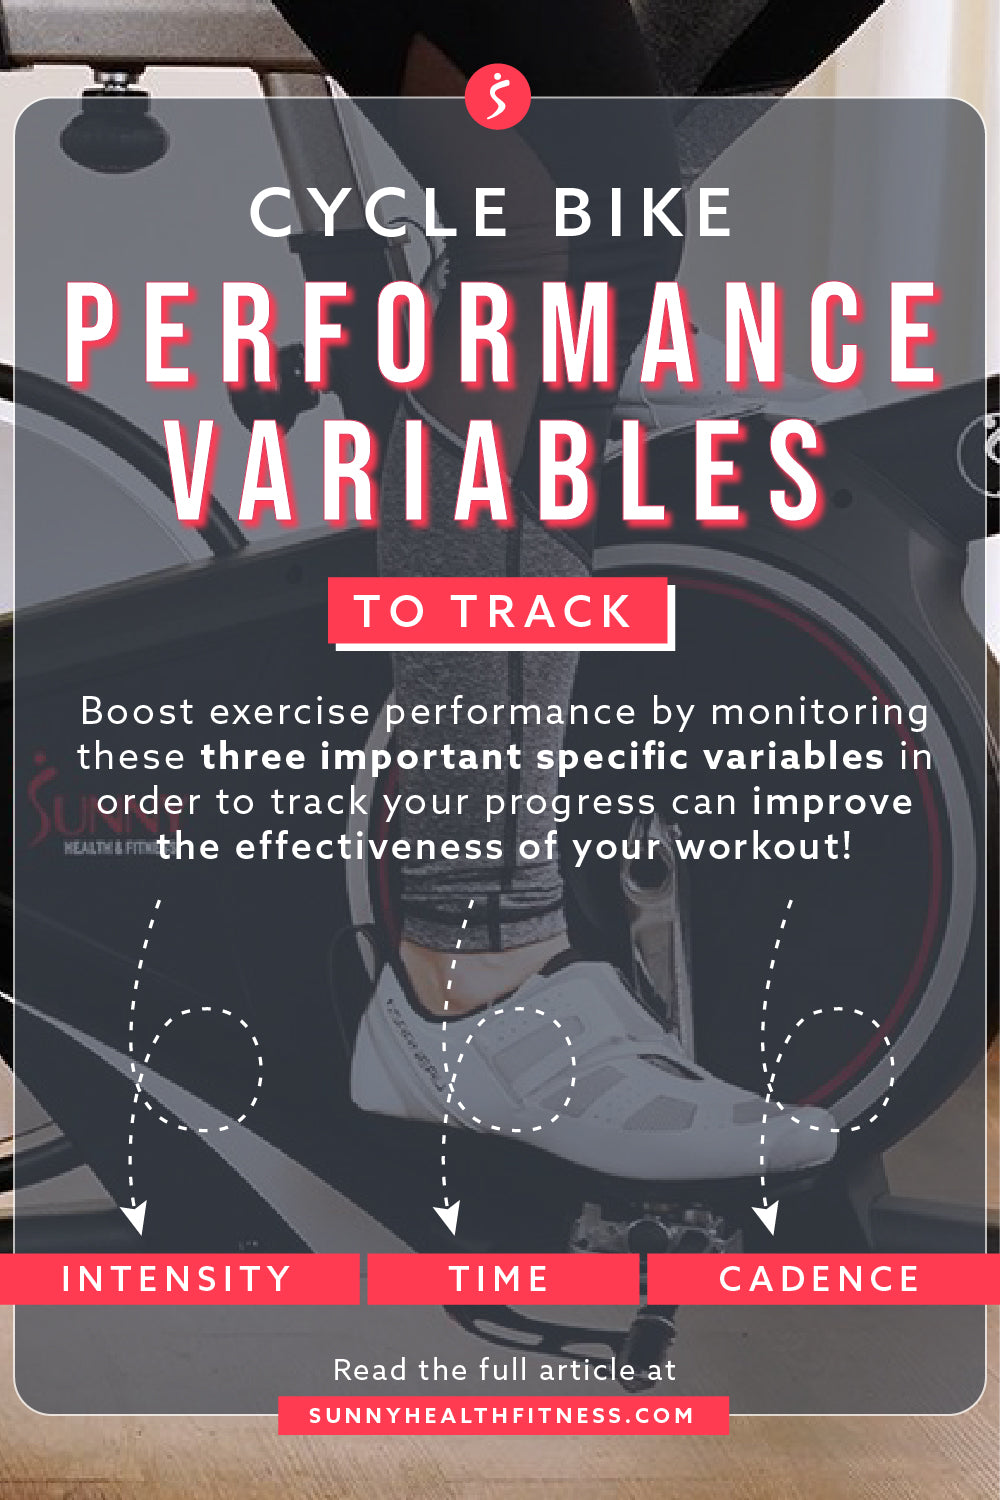 Cycle Bike Performance Variables To Track Infographic